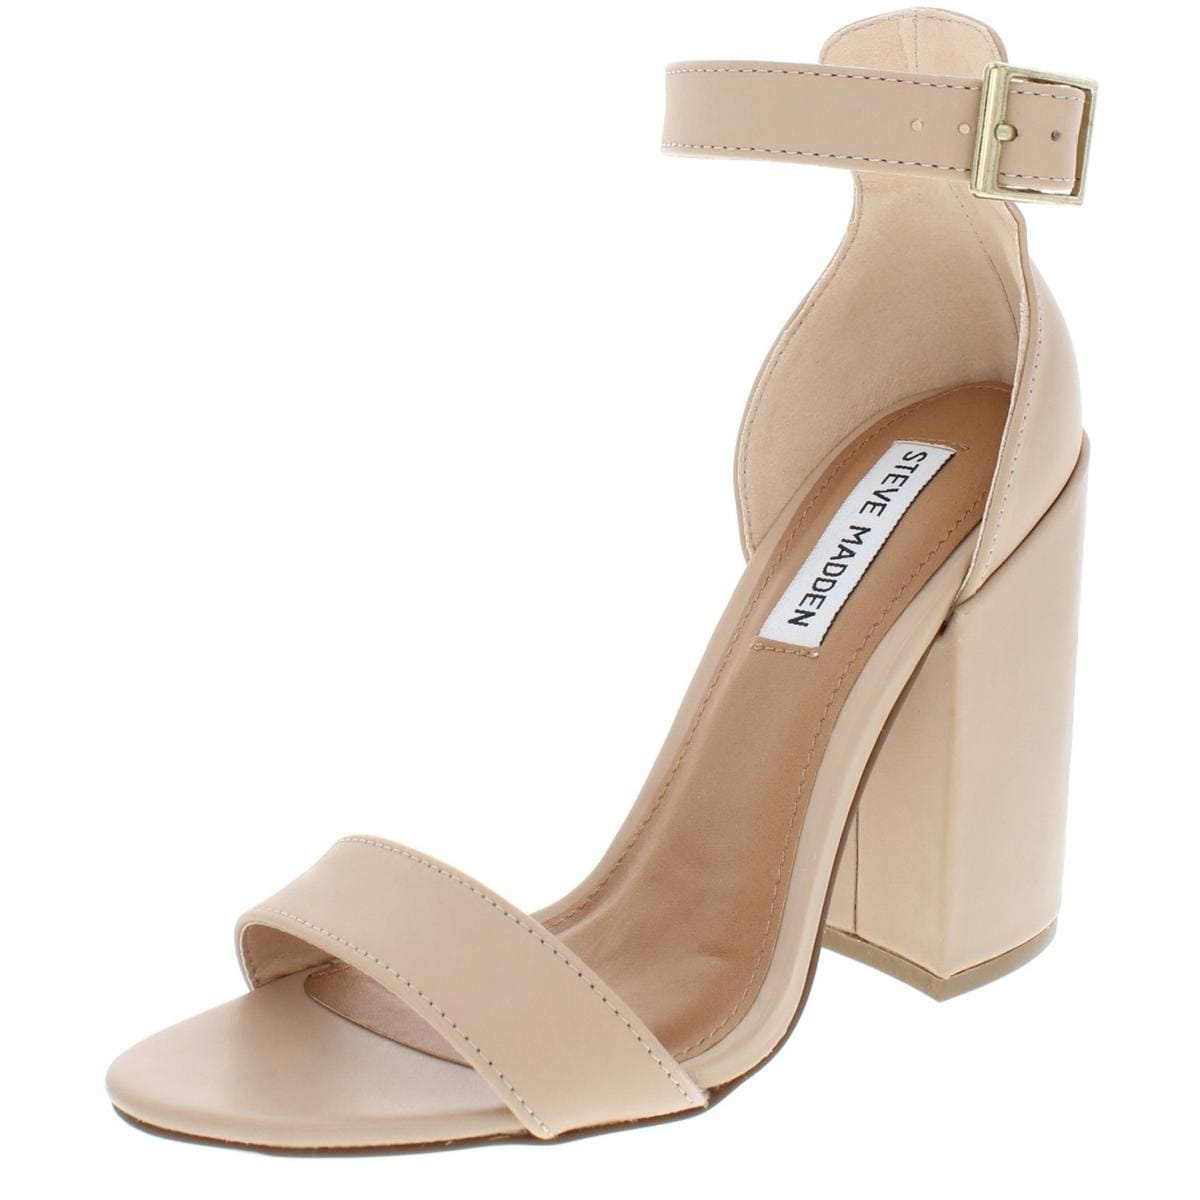 a0e96460462 Shop Steve Madden Womens Ironic Dress Sandals Open Toe Block Heel - Free  Shipping On Orders Over  45 - Overstock - 27132570